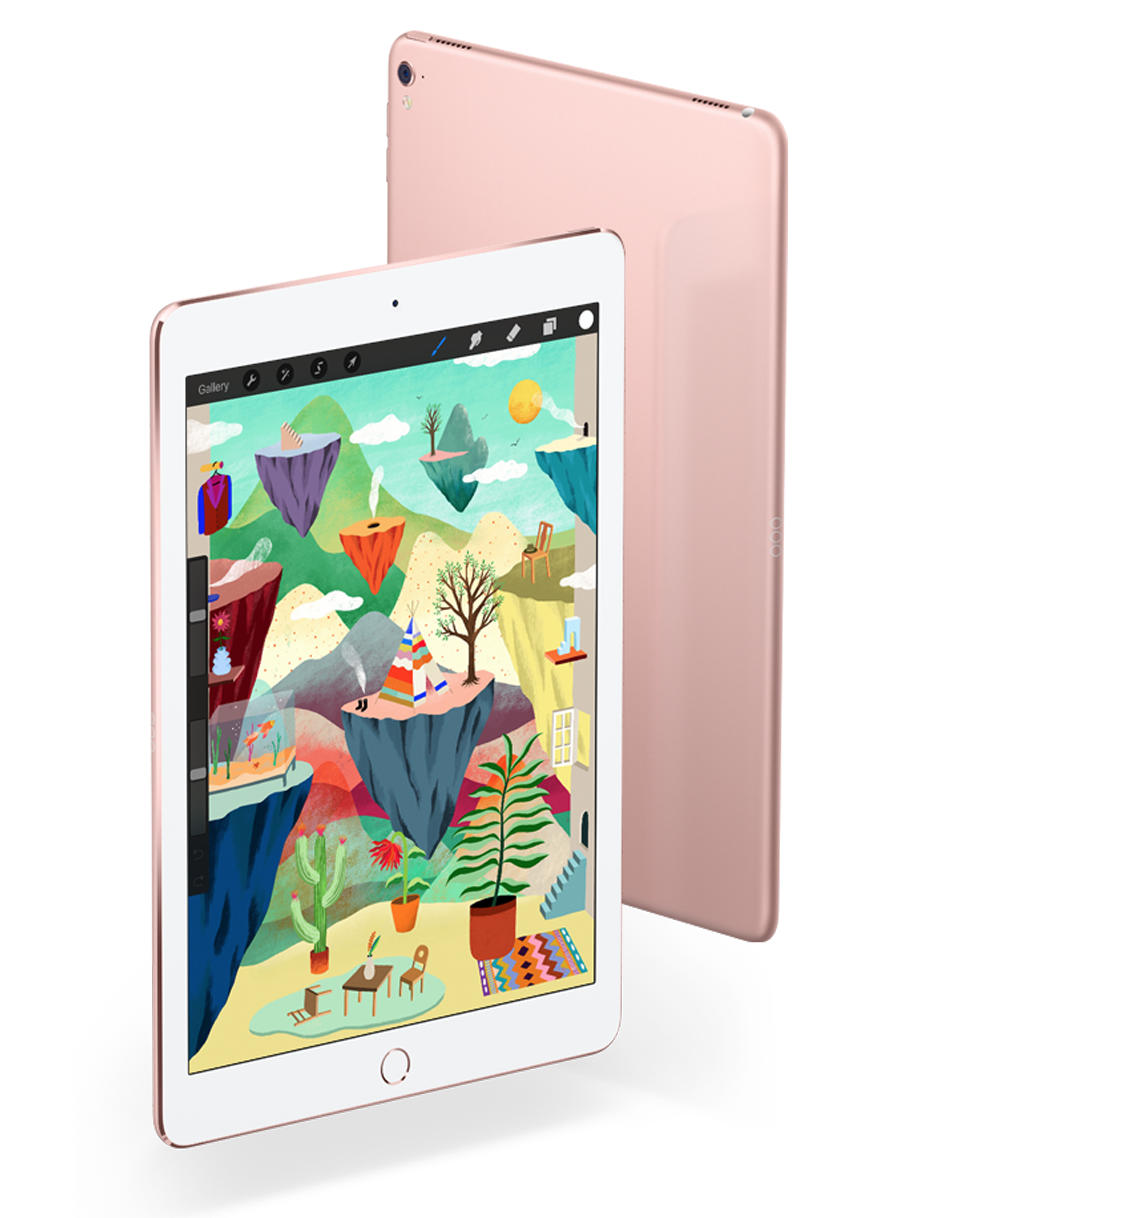 New 97 Inch Ipad Pro Starts At 599 And Will Be Available March 31st Apple Mini Retina 32gb Wifi Cell Silver